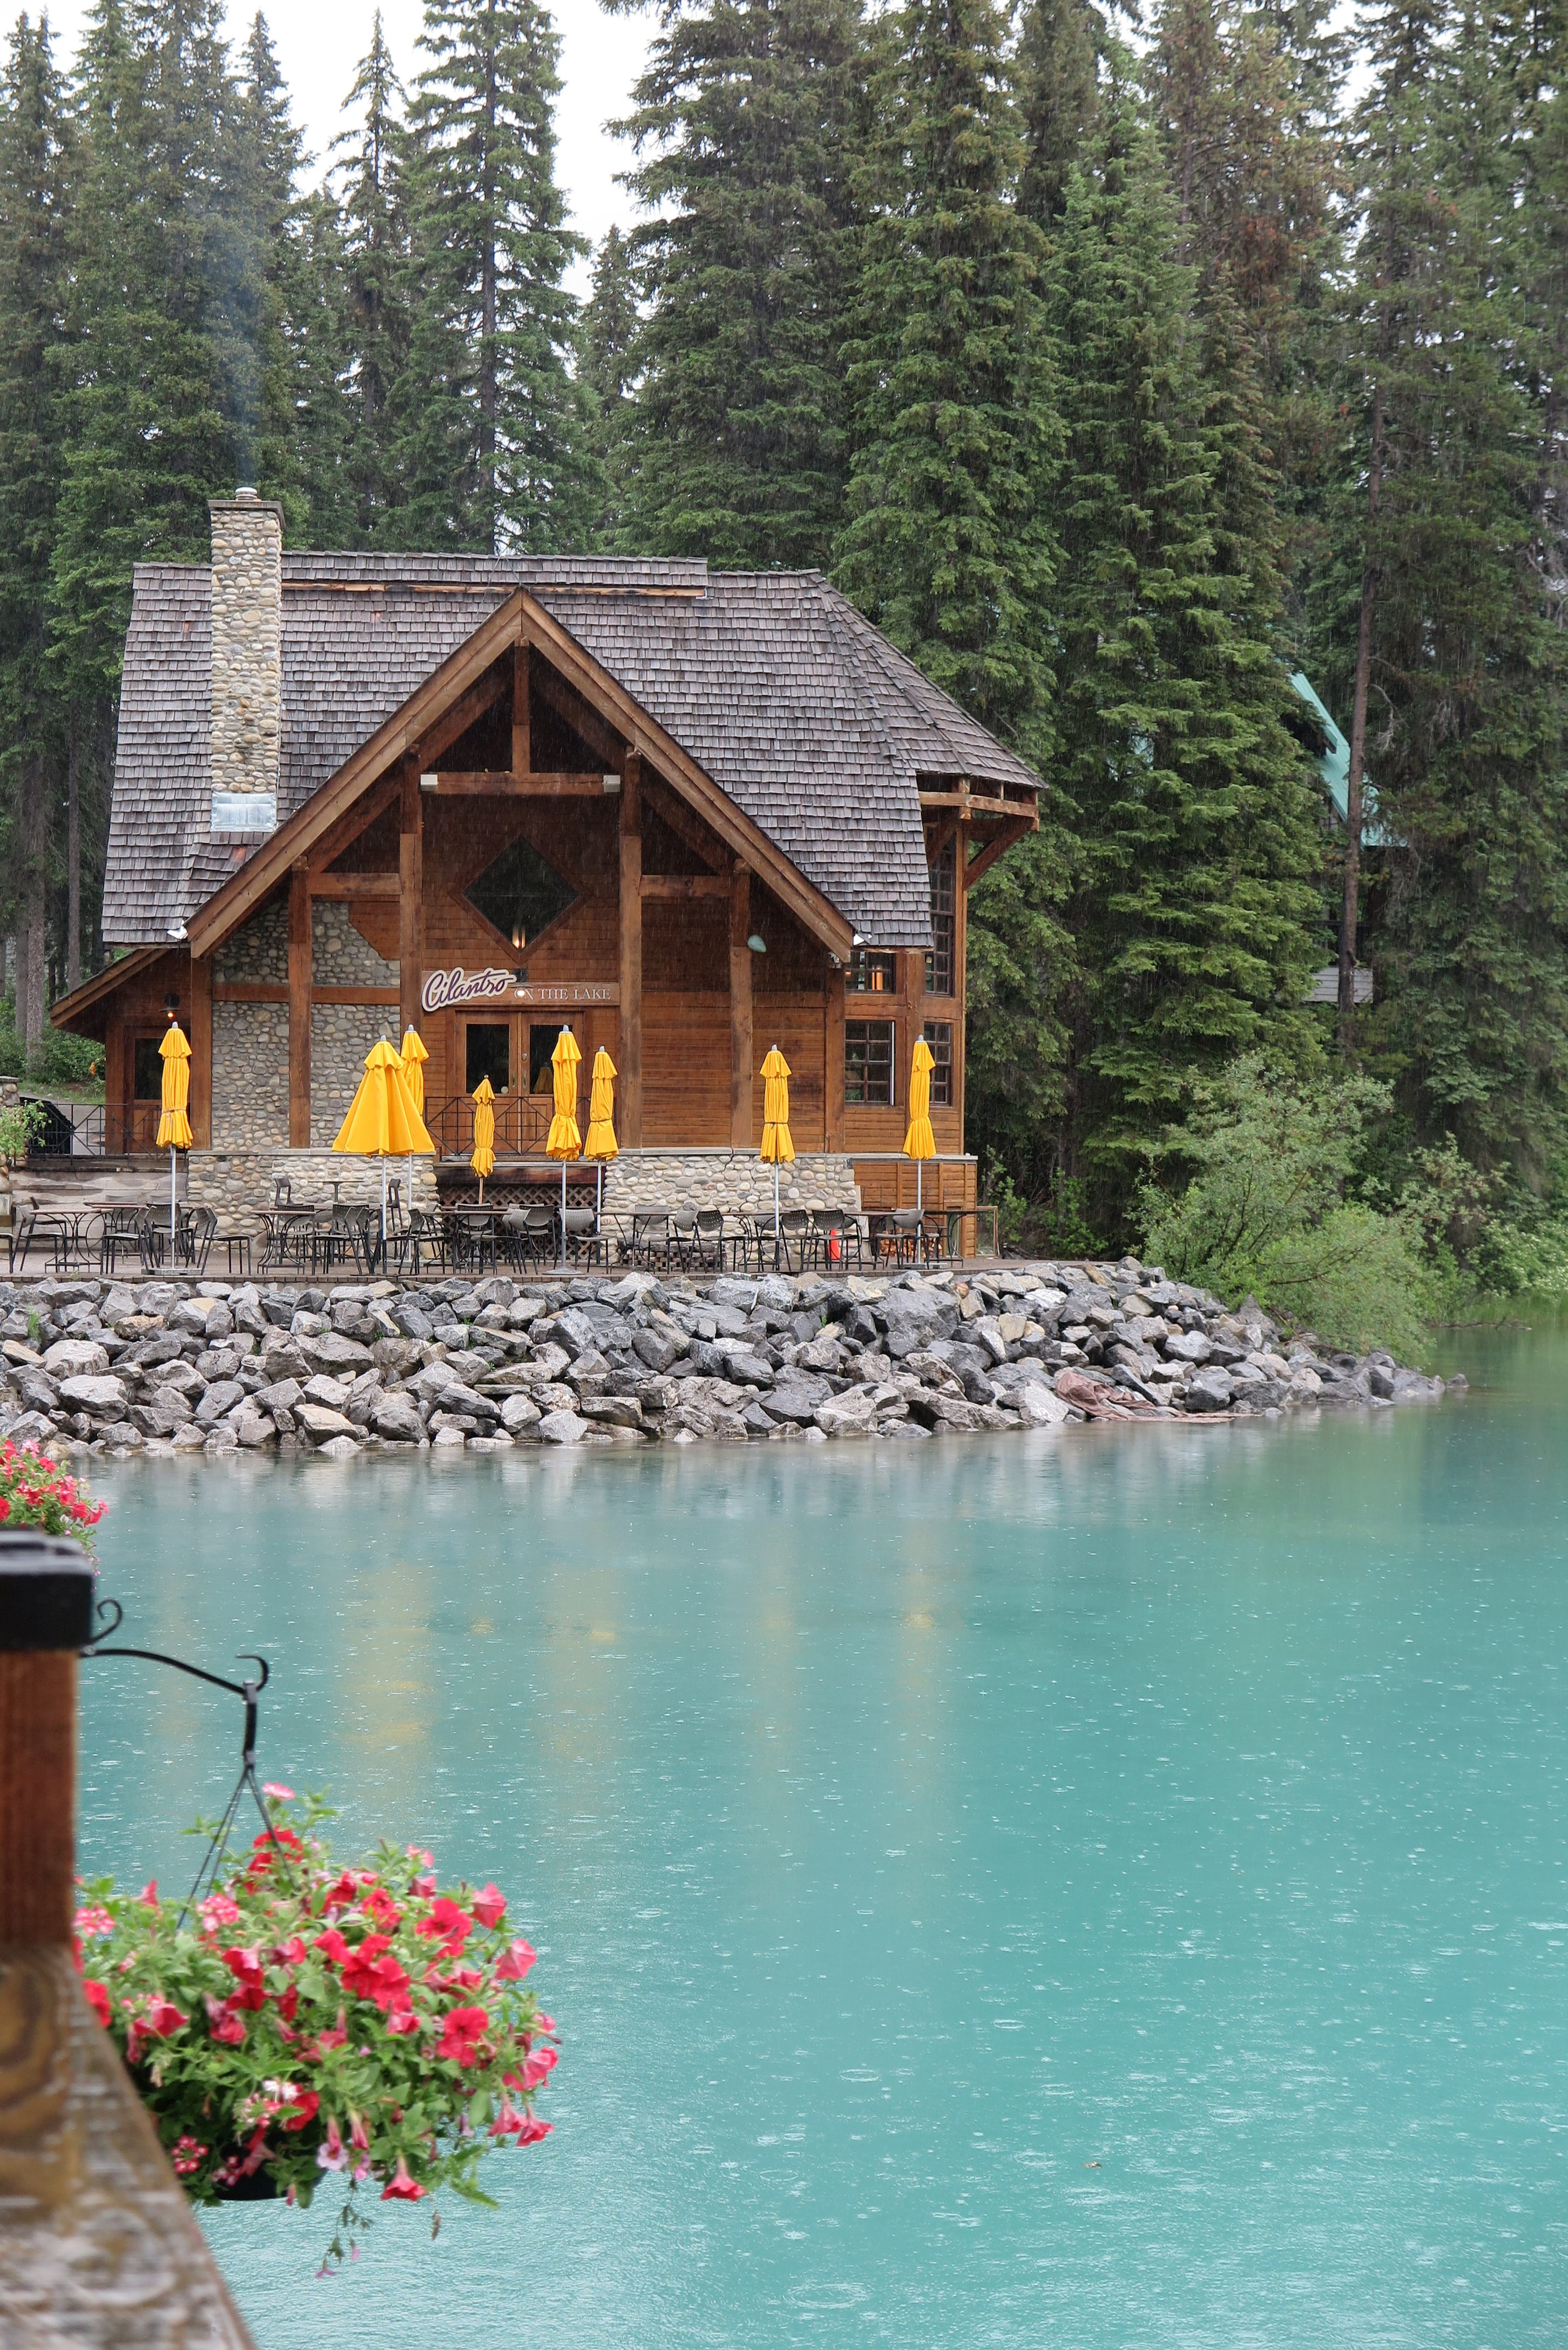 Emerald Lake Teahouse Canada in the rain